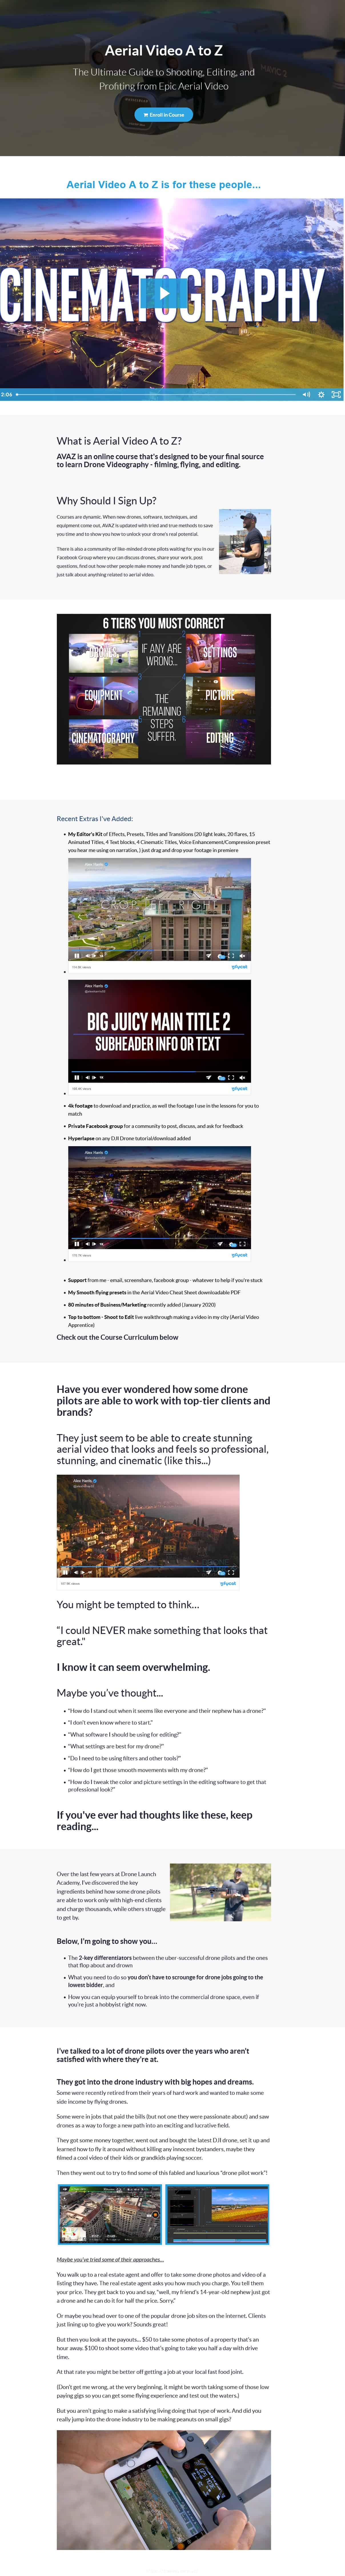 Aerial Video A to Z 2021 Sales Page